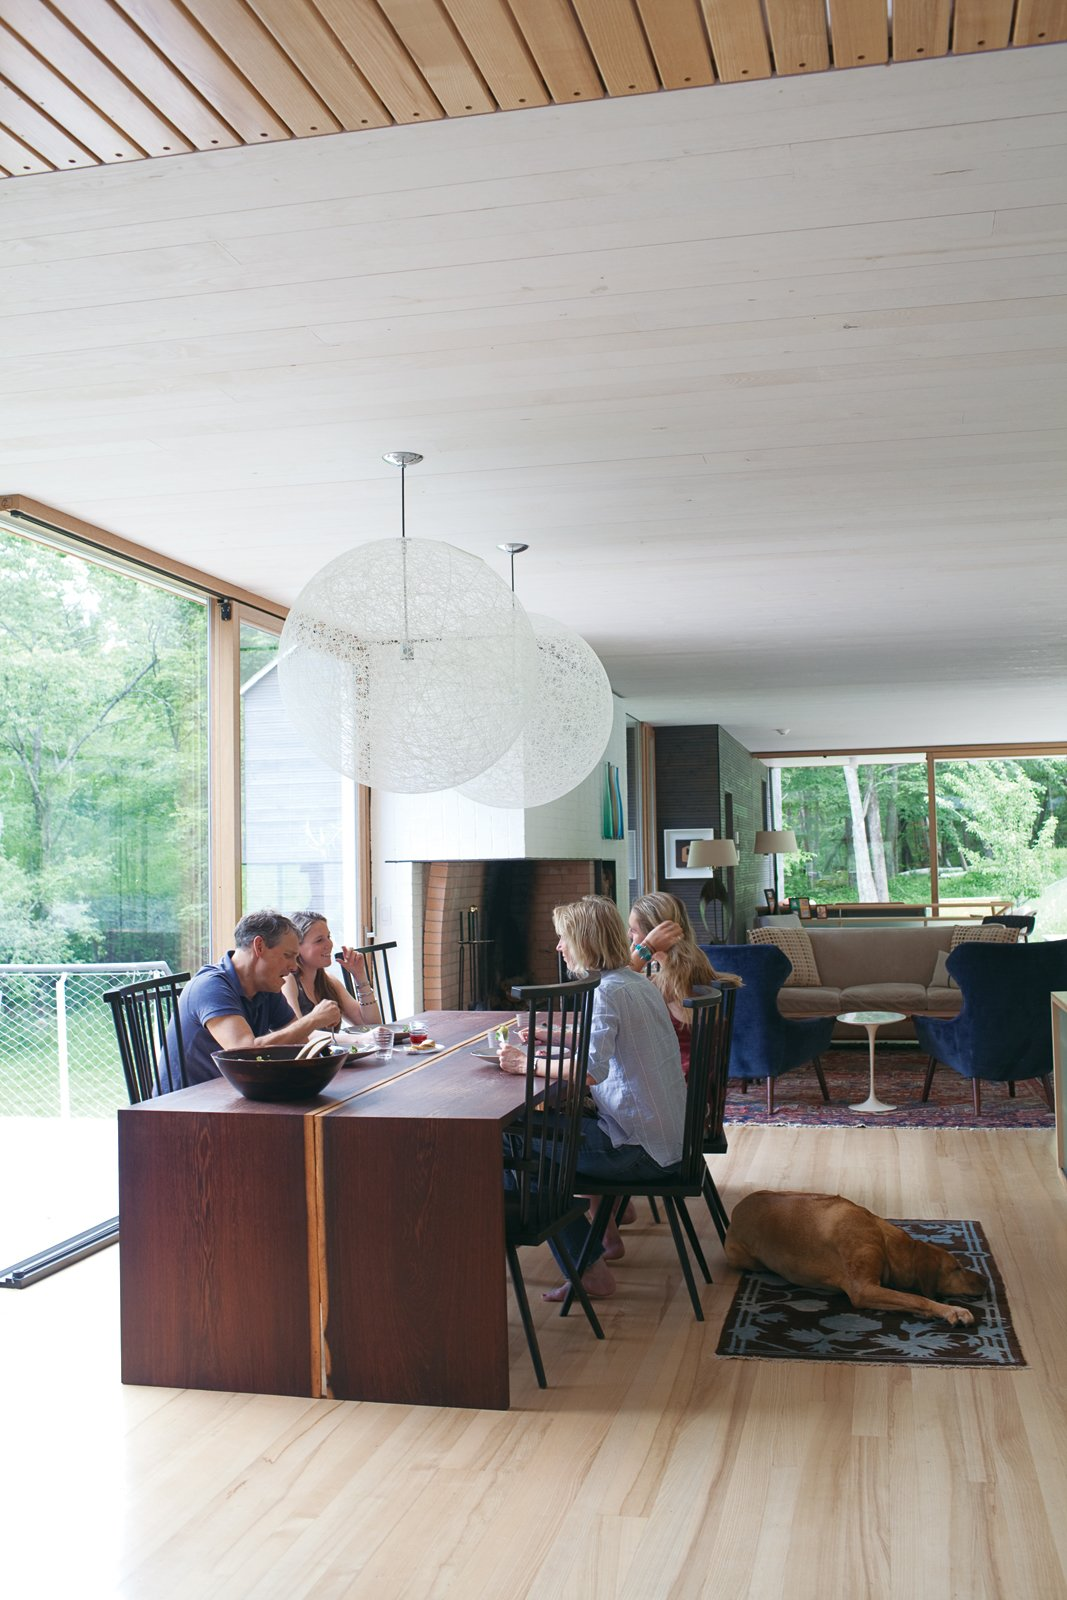 Light Hardwood Floor, Table, Pendant Lighting, and Dining Room The family relaxes in their home's dining   room, sited atop the old foundation. Organschi designed and fabricated the table of wenge wood; the chairs were inherited from his uncle; and the pendant lights are Bertjan   Pot designs for Moooi.  Photo 1 of 9 in Gable-Roofed Rural Weekend Home in Connecticut